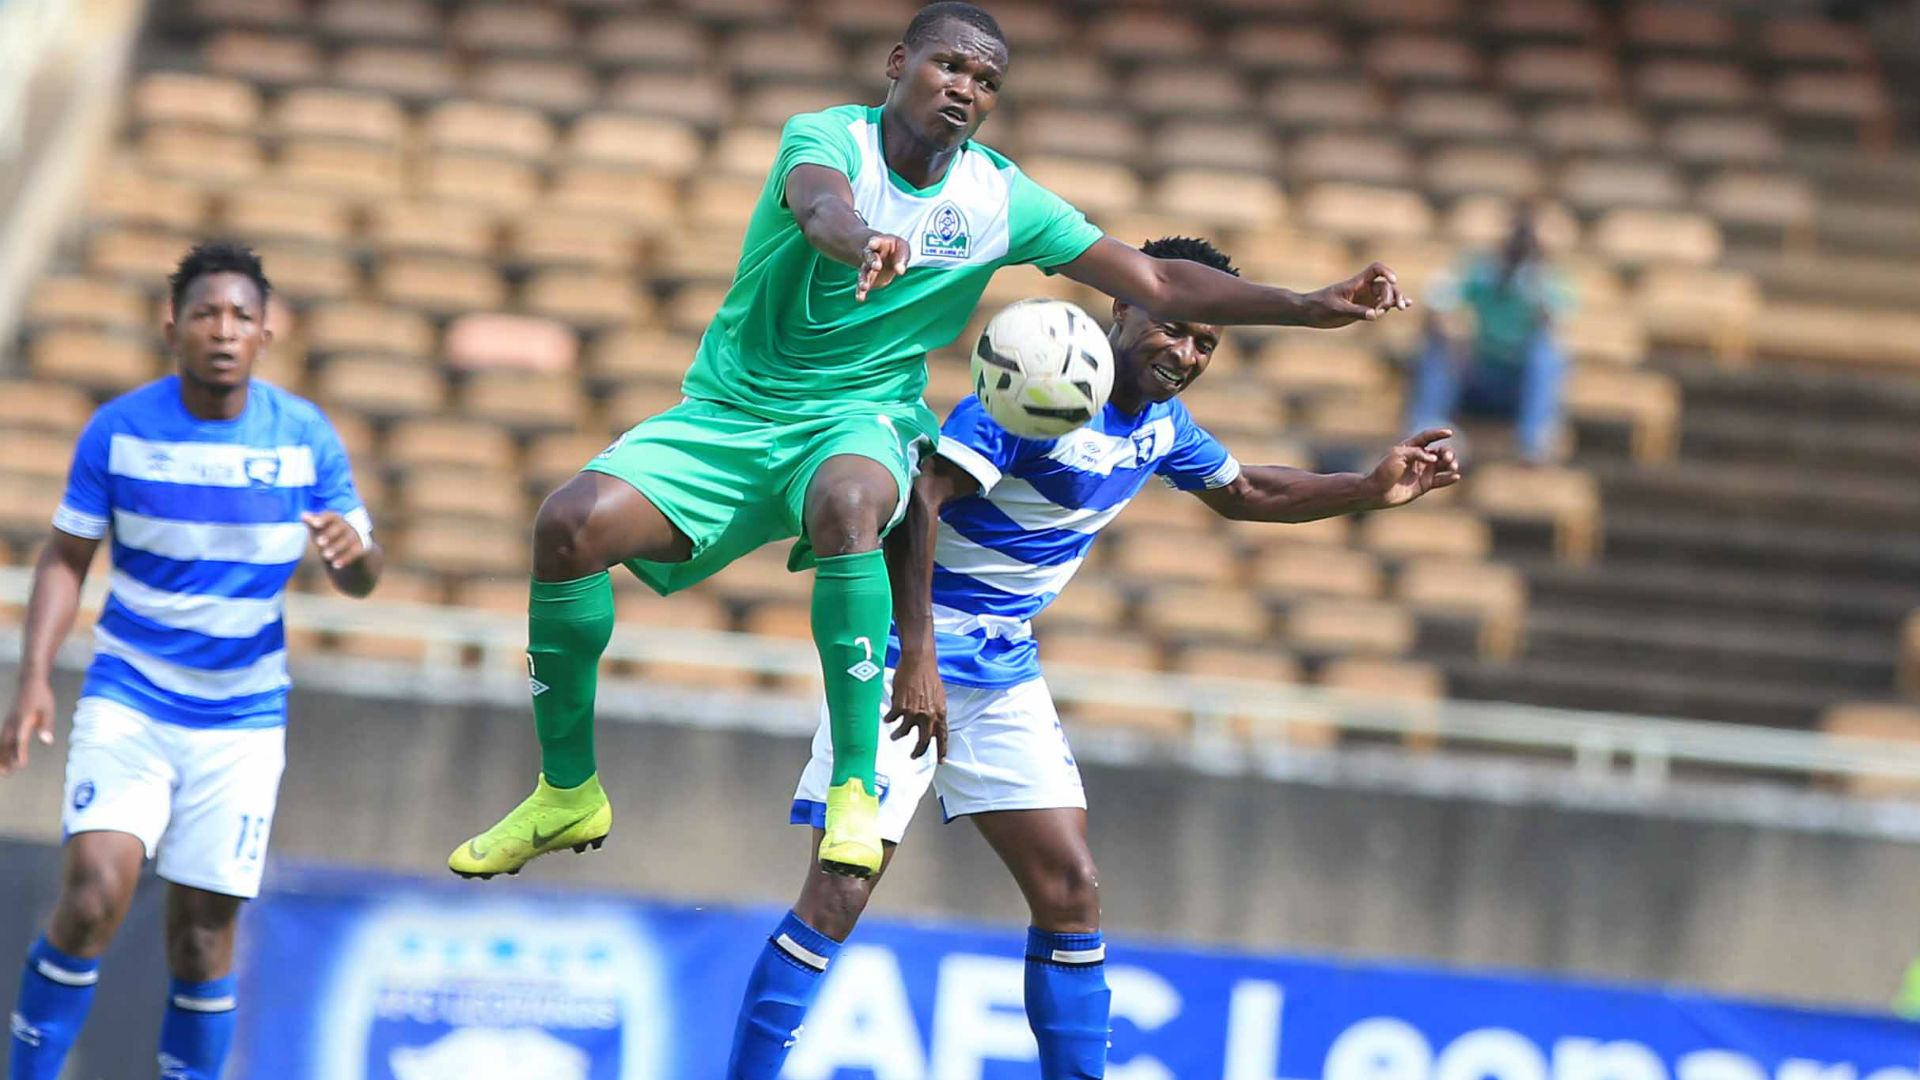 AFC Leopards vs Gor Mahia and five FKF PL round one matches to look forward to